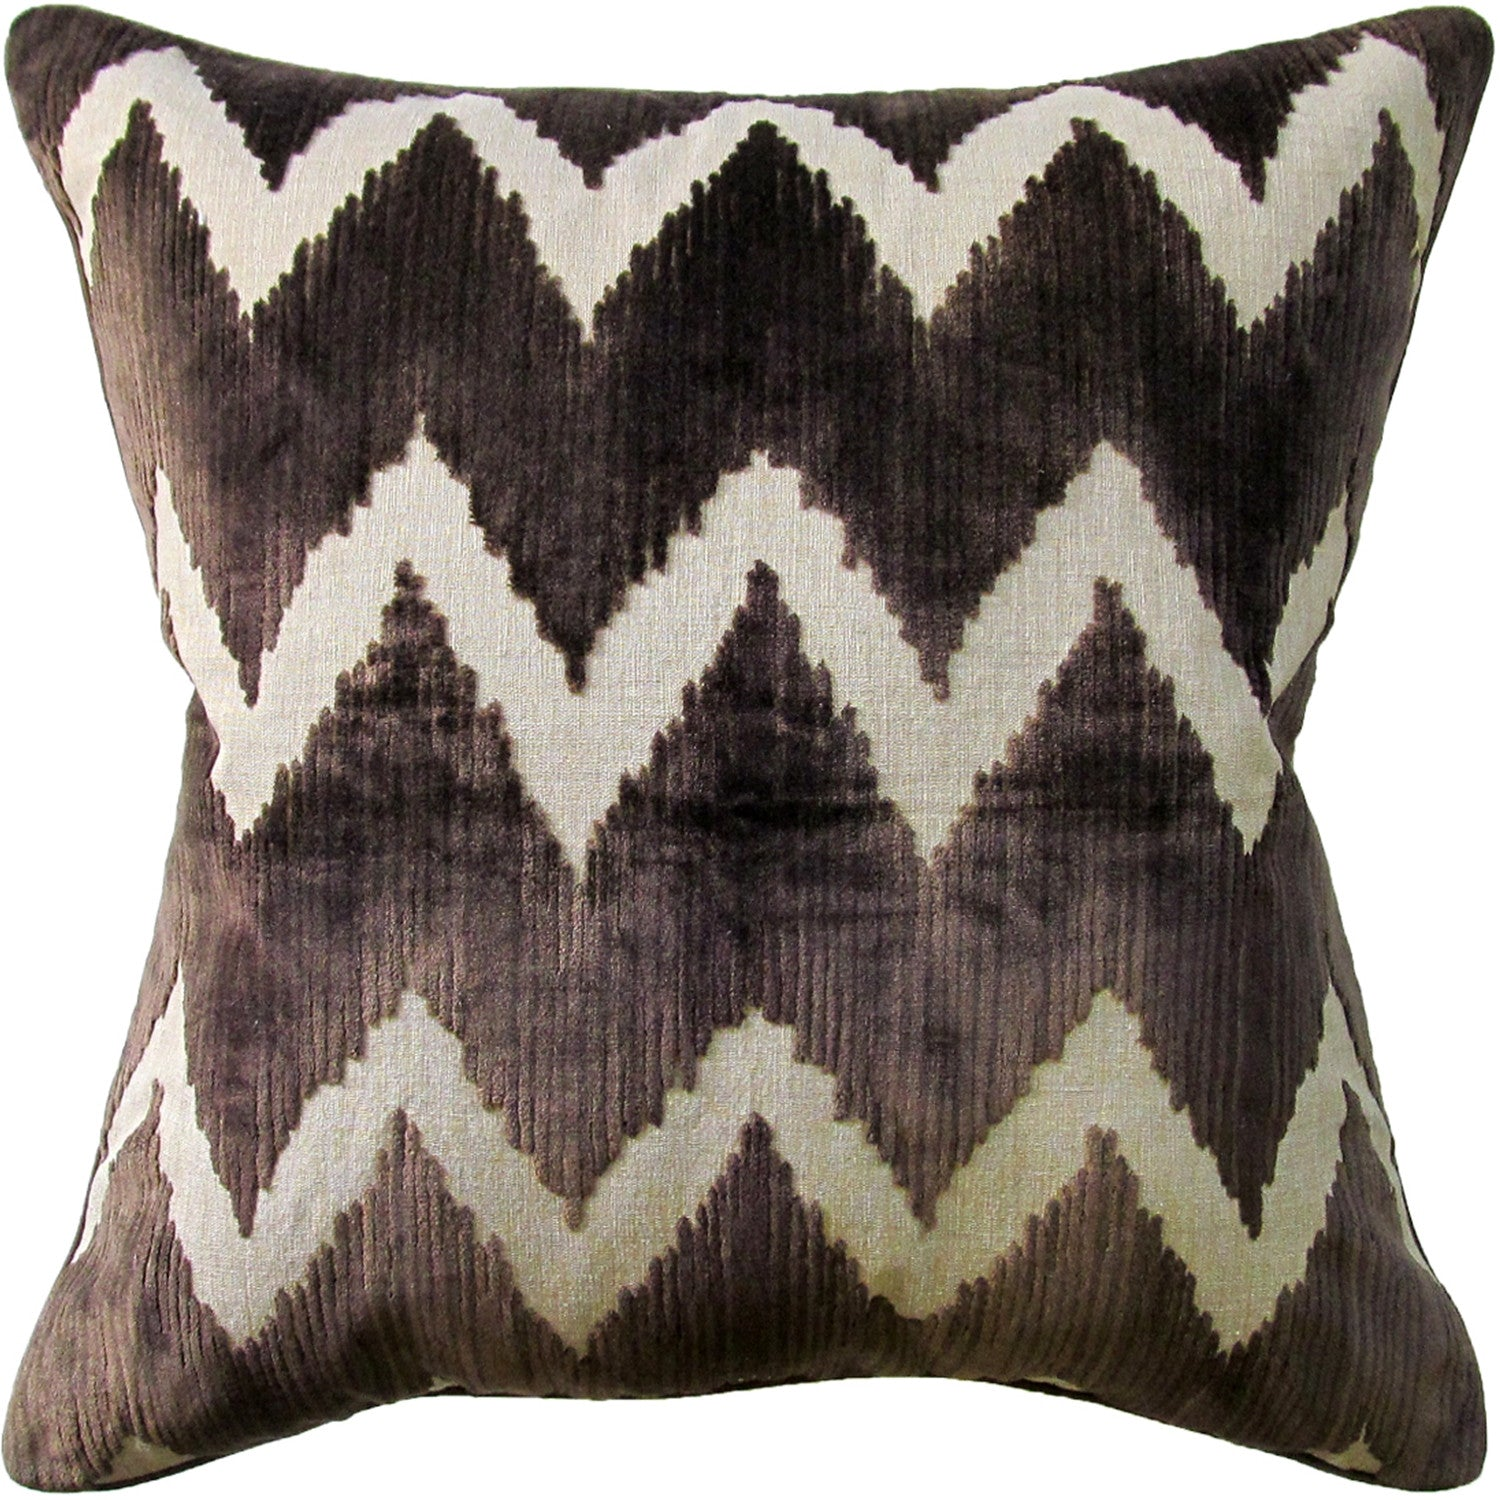 Ryan Studio Watersedge Pillow in Chocolate